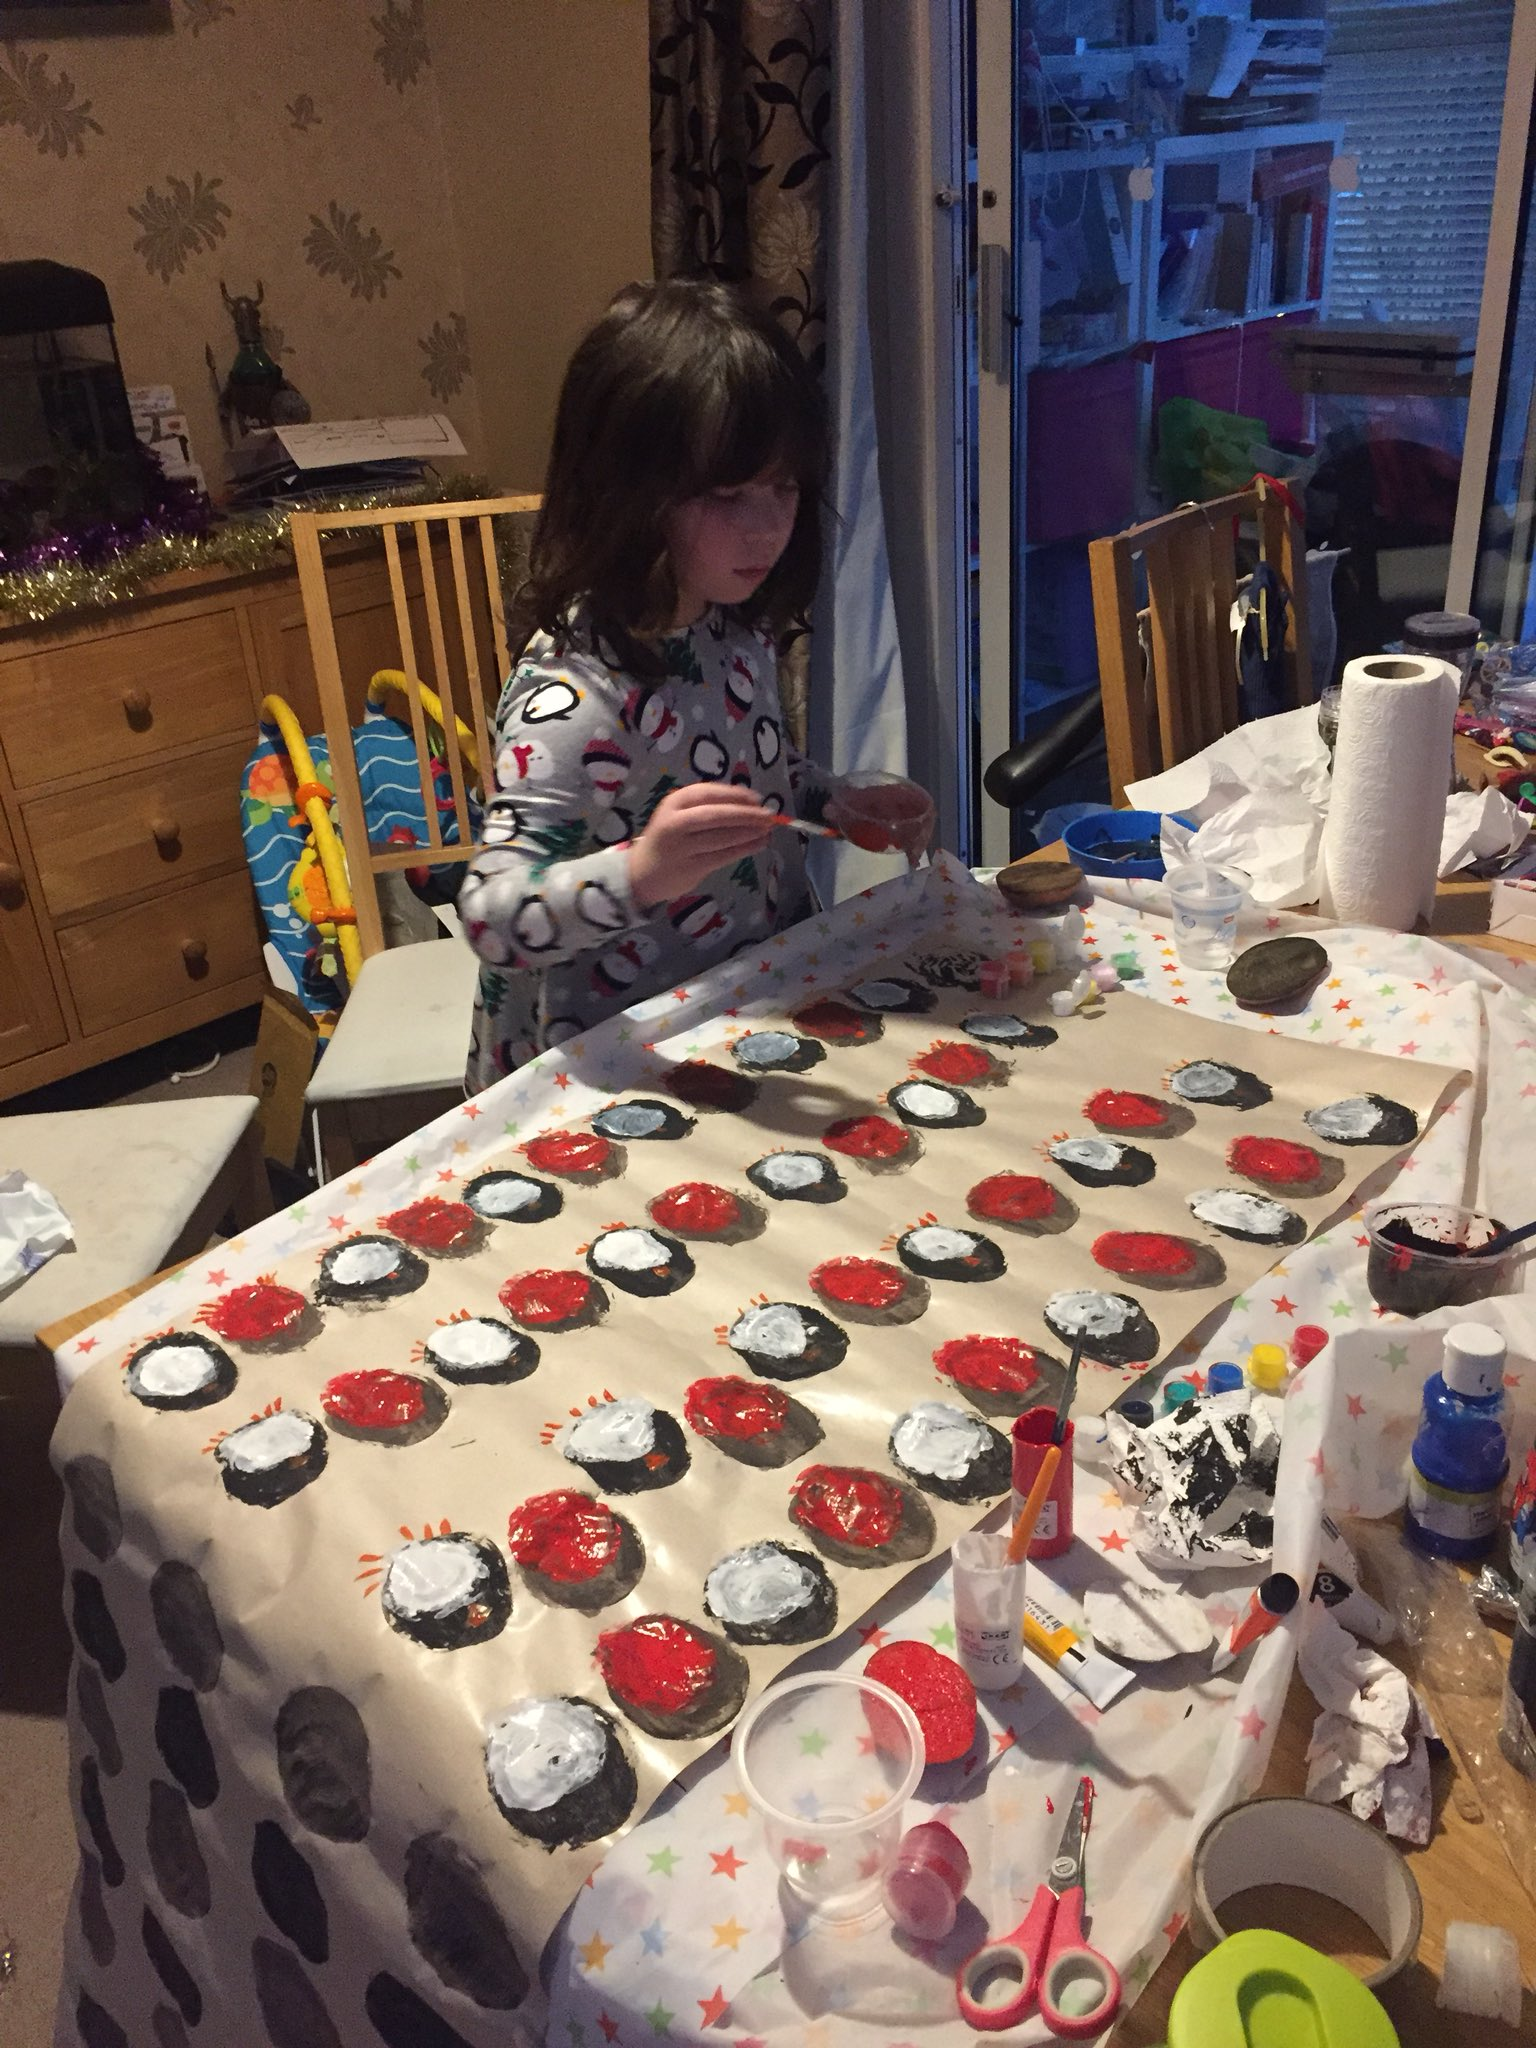 RT @handmade4lr: @KirstieMAllsopp my 7 year old has been busy with your wrapping idea today. https://t.co/xYgpvEYfqg